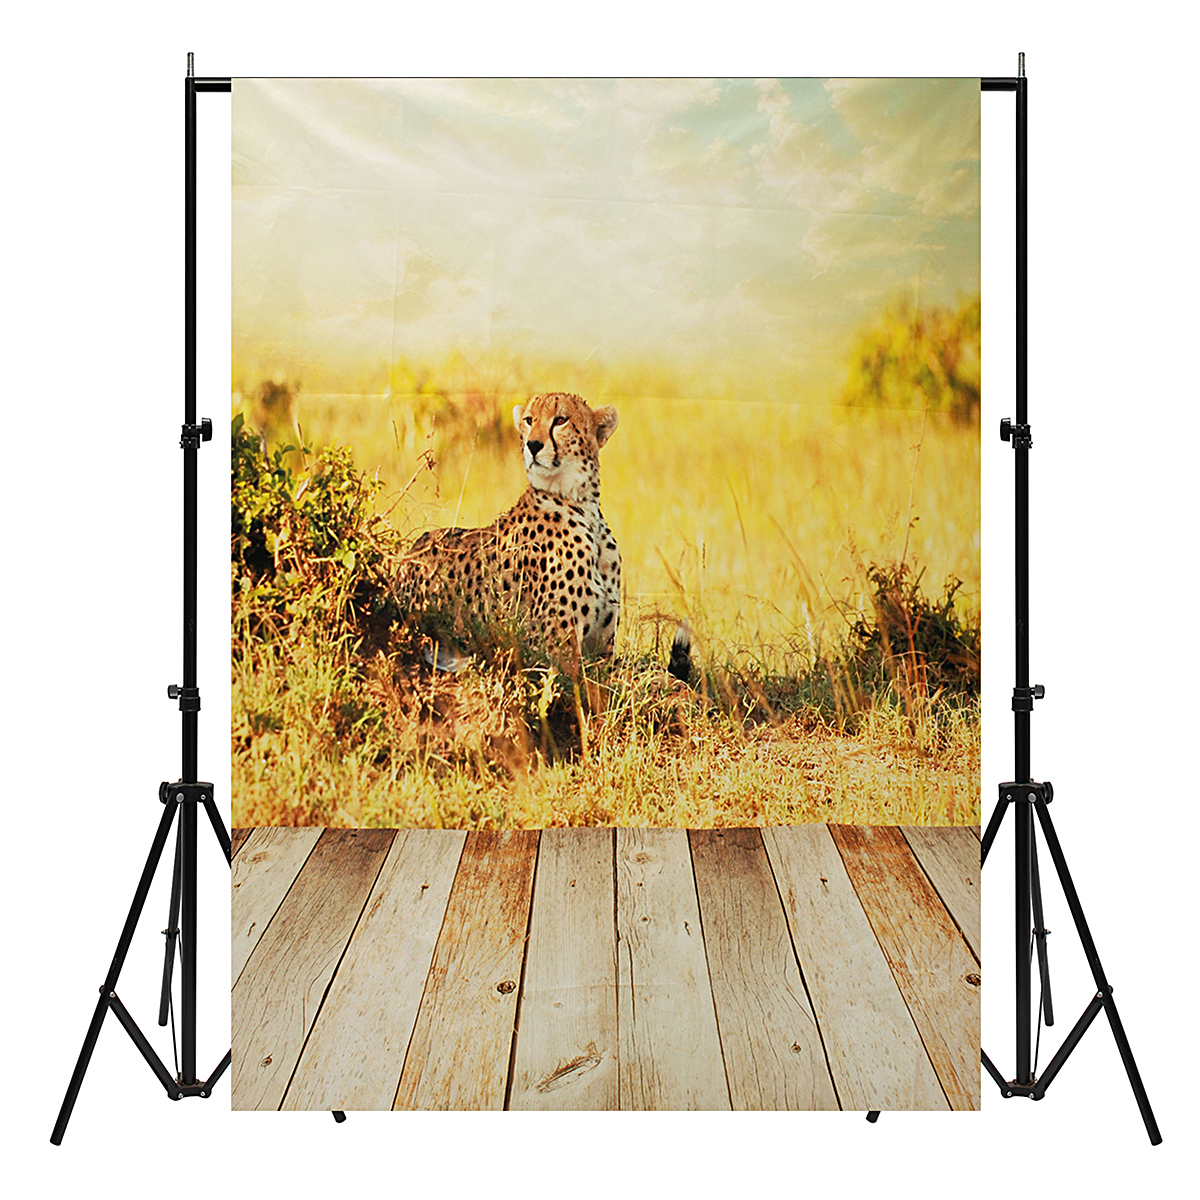 5x7ft Vinyl Love Wood Floor Cheetah Kids Theme Backdrop Photography Photo Prop